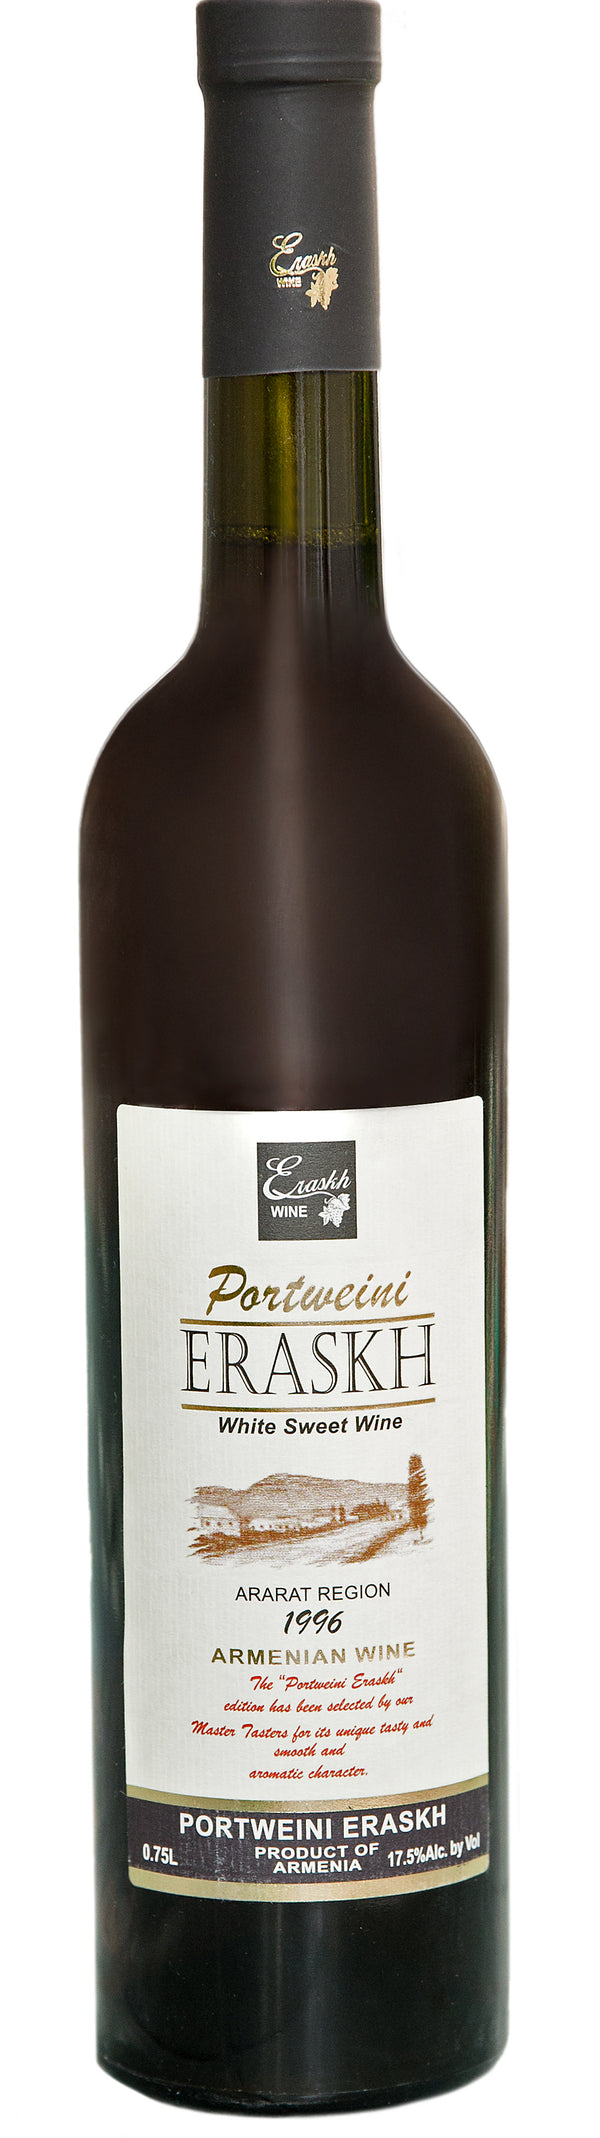 Portweini Eraskh Sweet White Wine